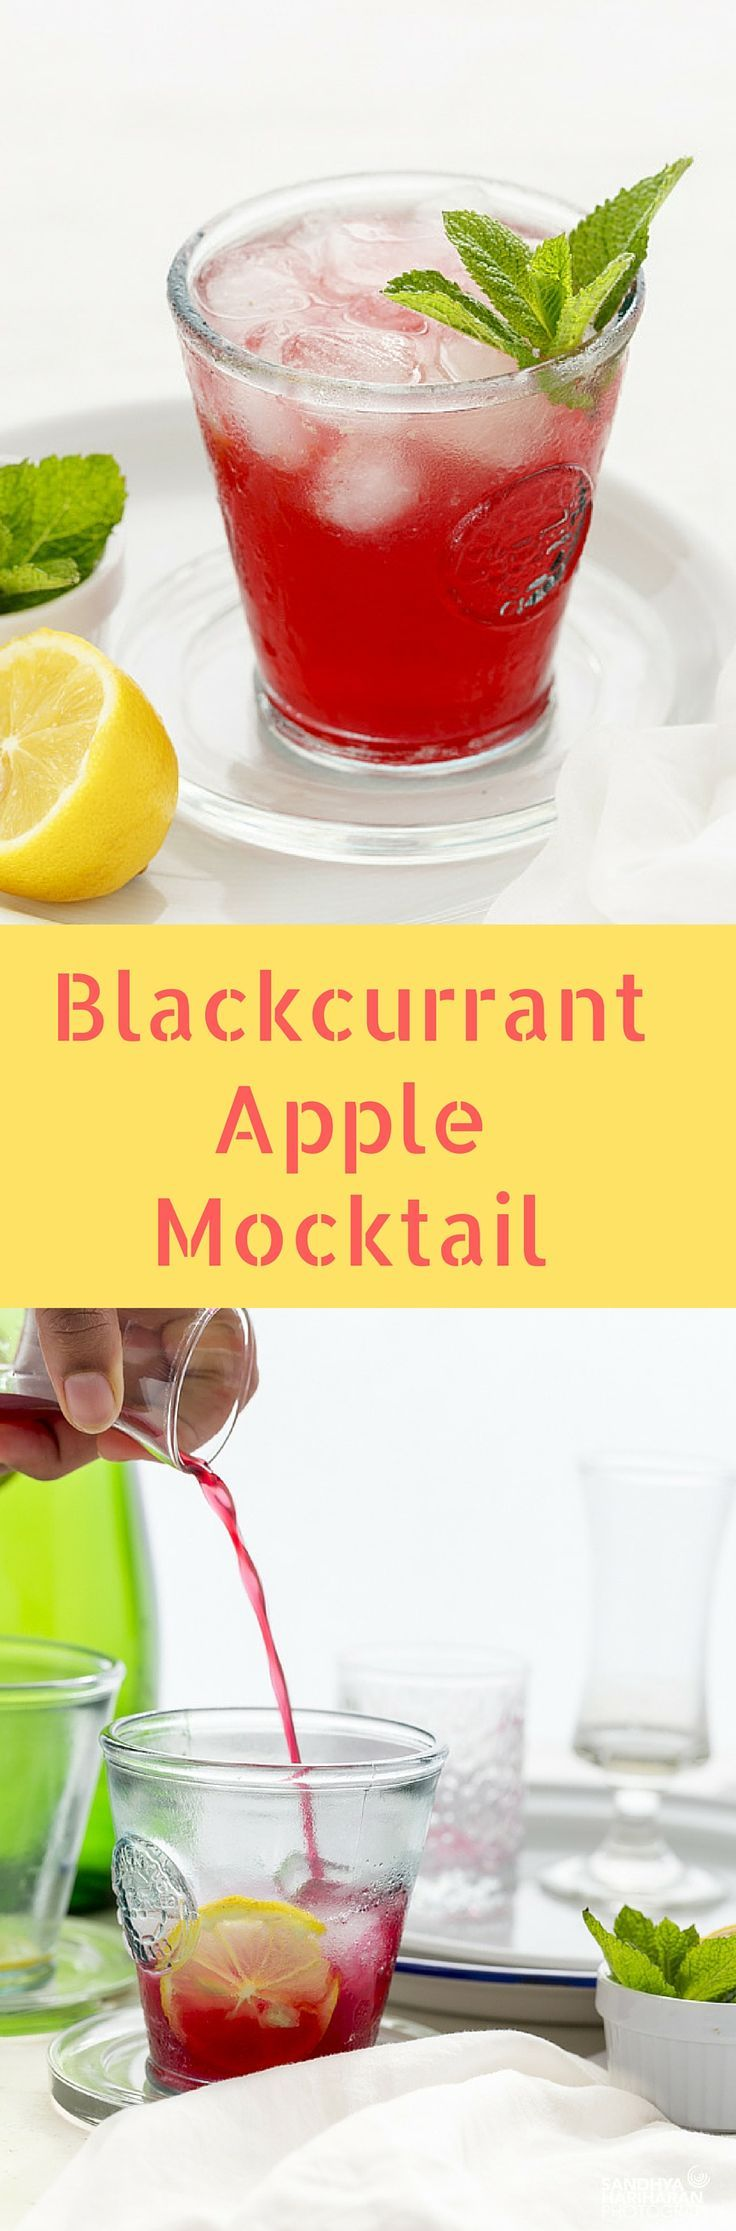 Blackcurrant Apple Mocktail drink can be shaken up in 10 minutes with Blackcurrant Juice, Limeade concentrate and sparkling apple juice.